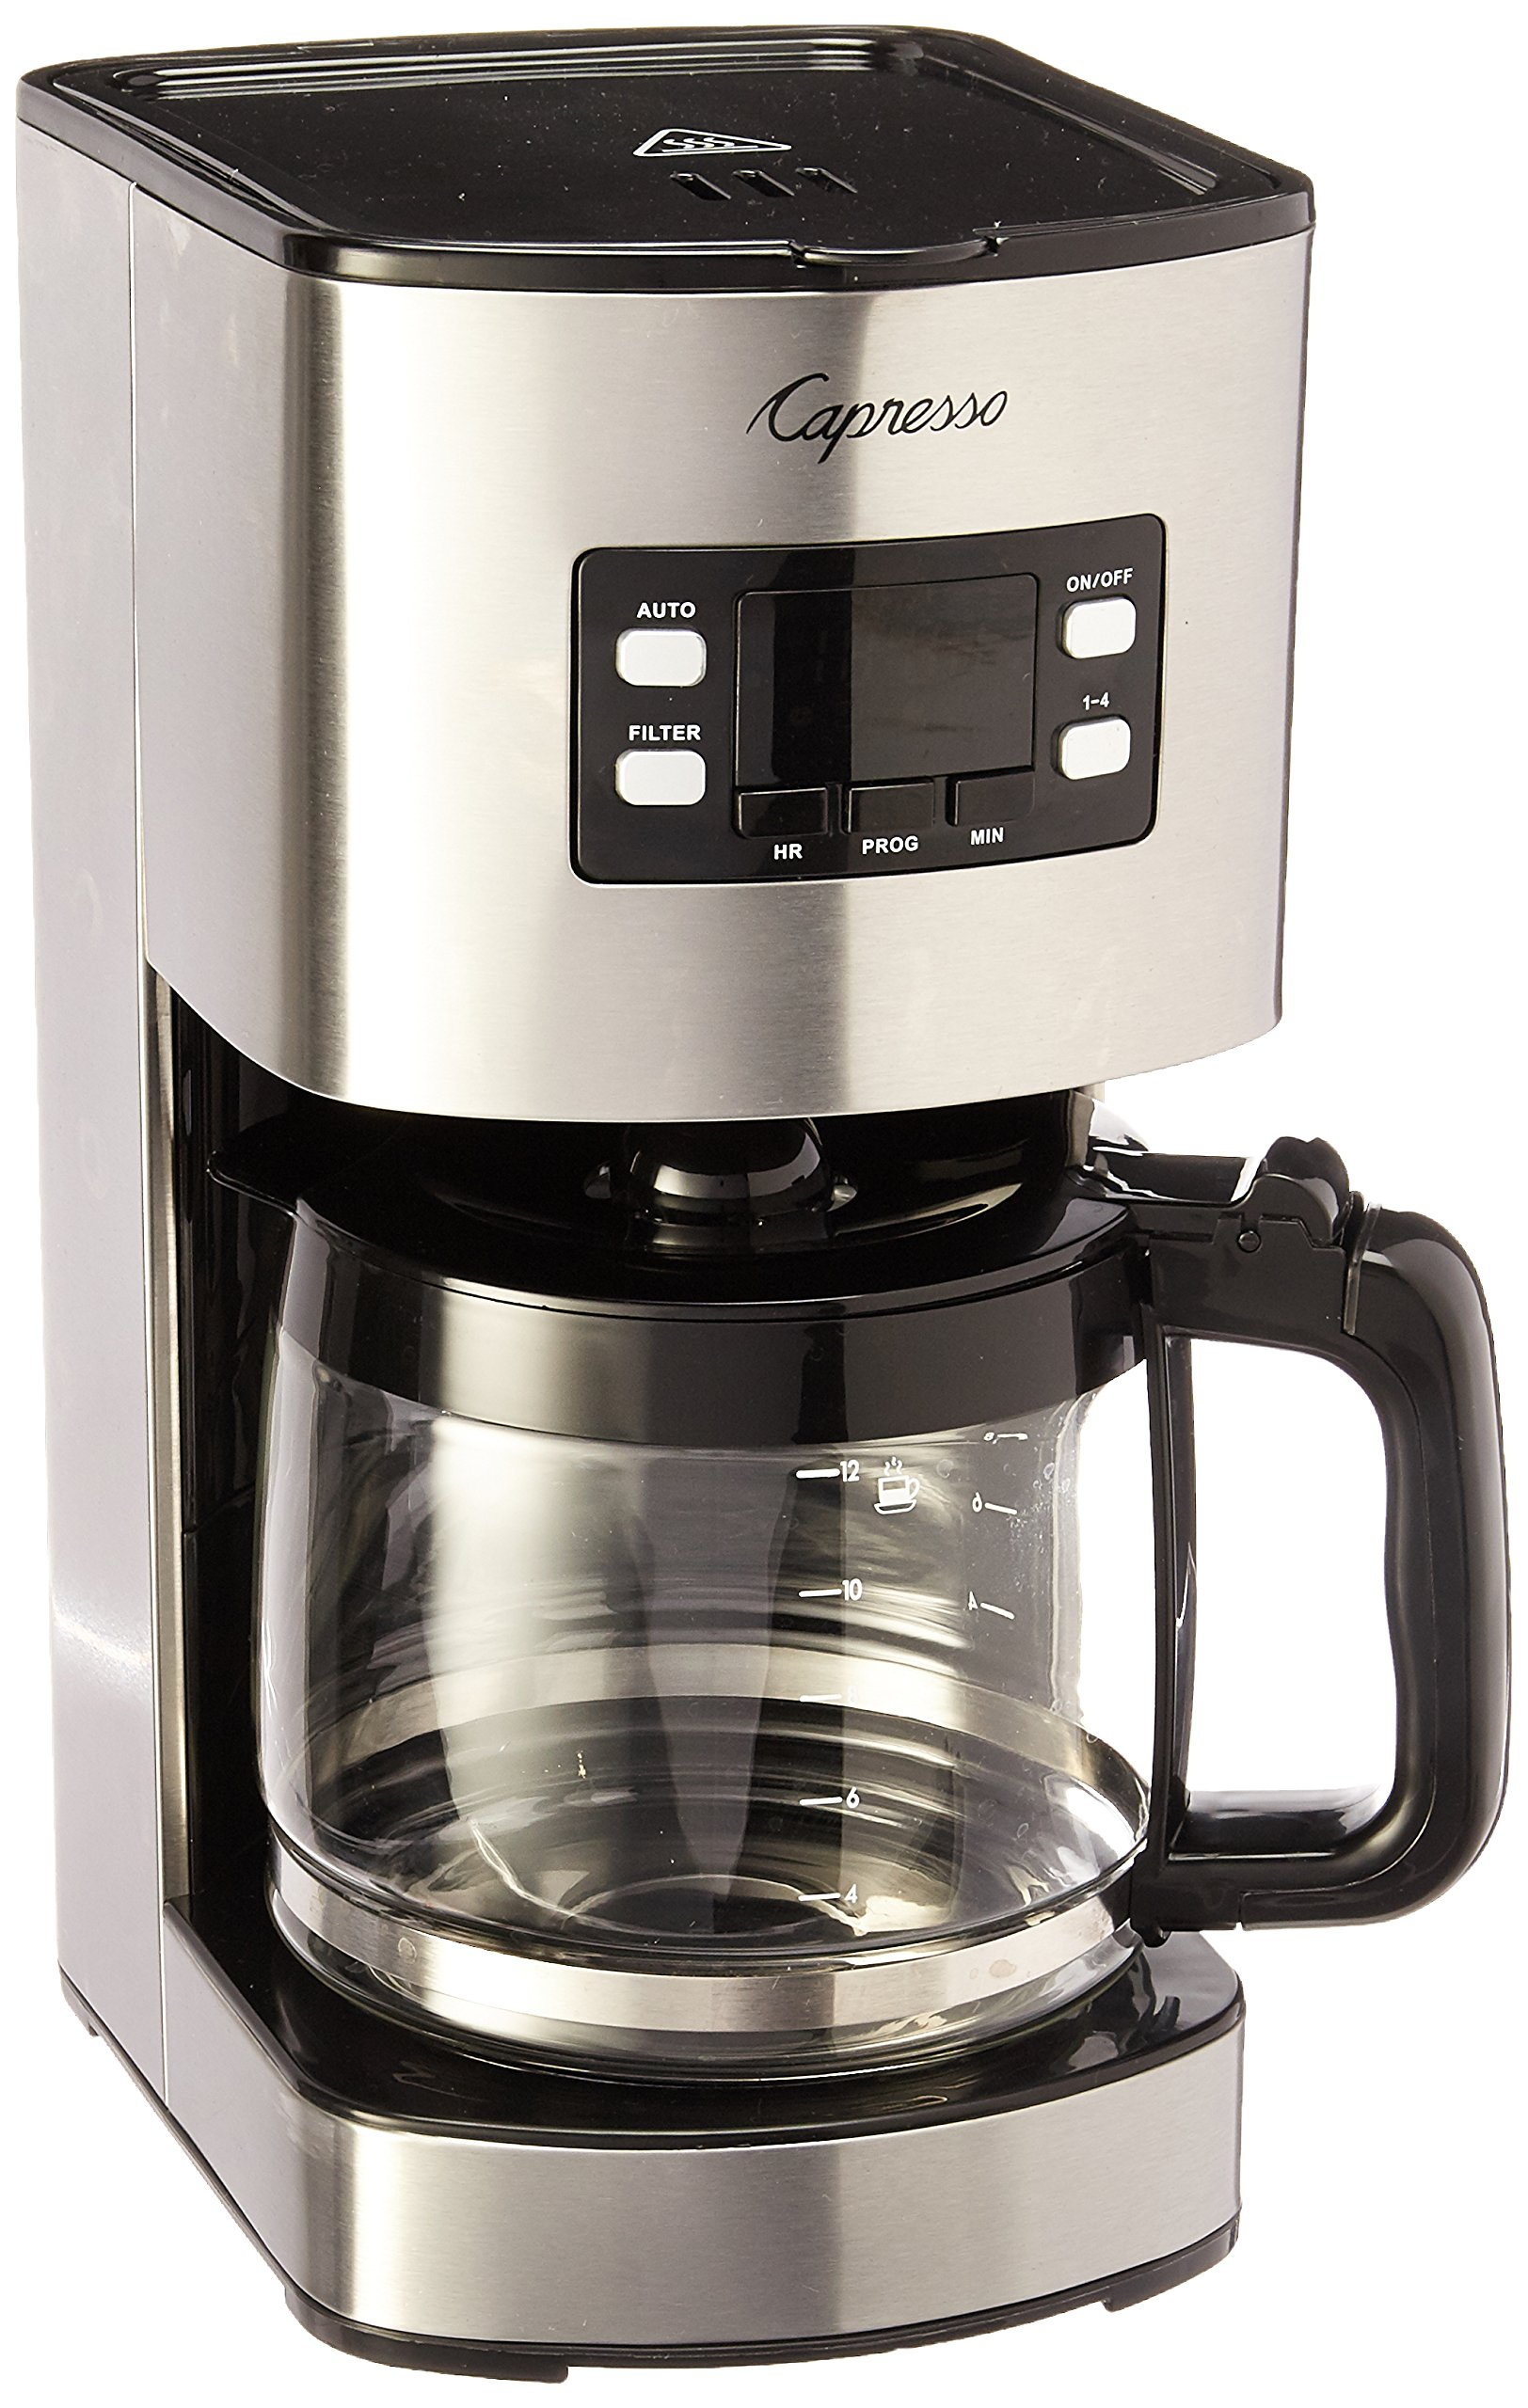 Capresso 434.05 12 Cup Coffee Maker SG300, Stainless Steel by Capresso